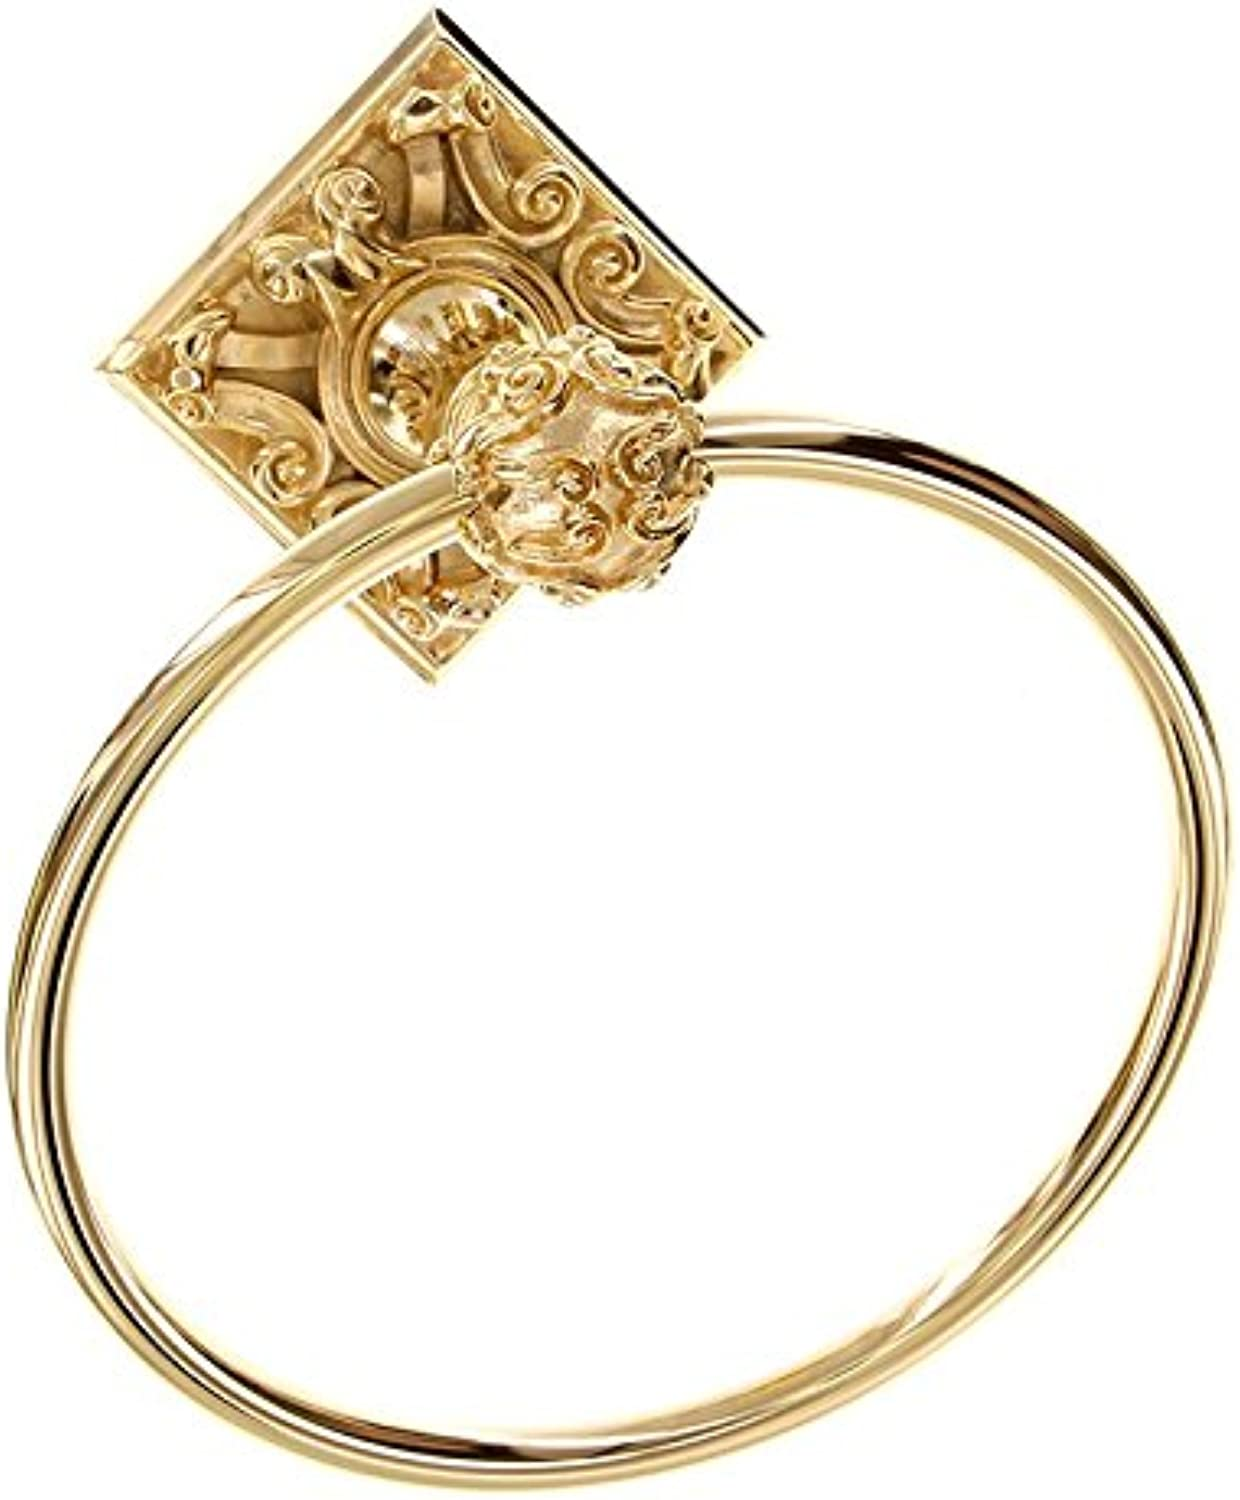 Vicenza Designs TR9001 Sforza Towel Ring, Polished gold